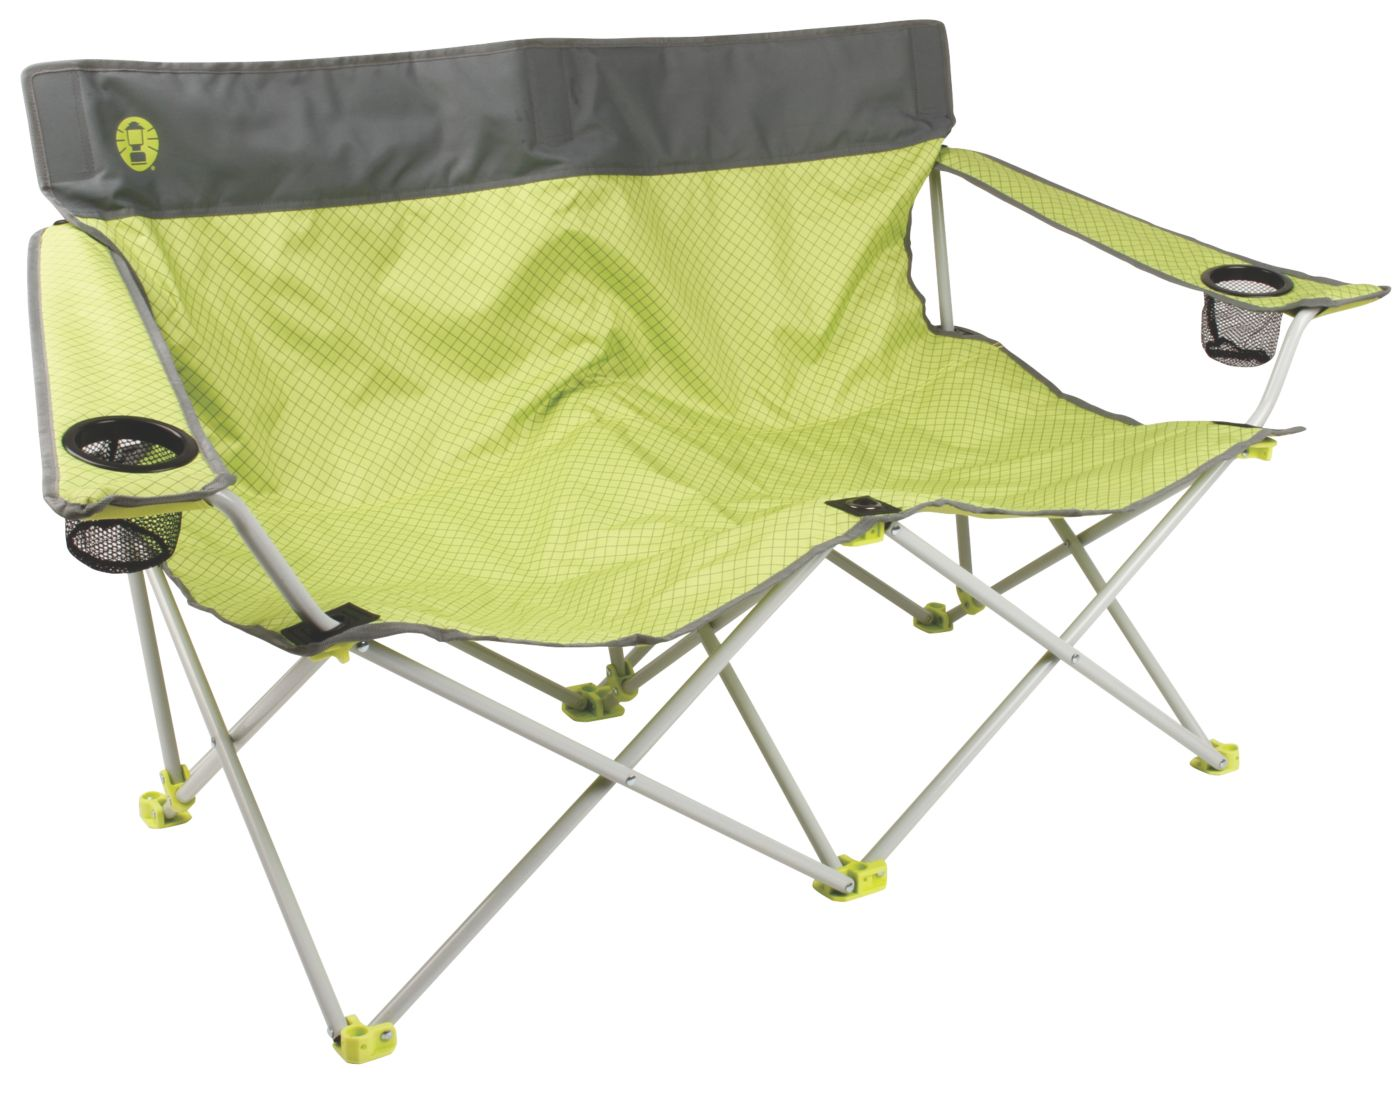 Small Fold Up Chair Camping Folding Chairs Coleman